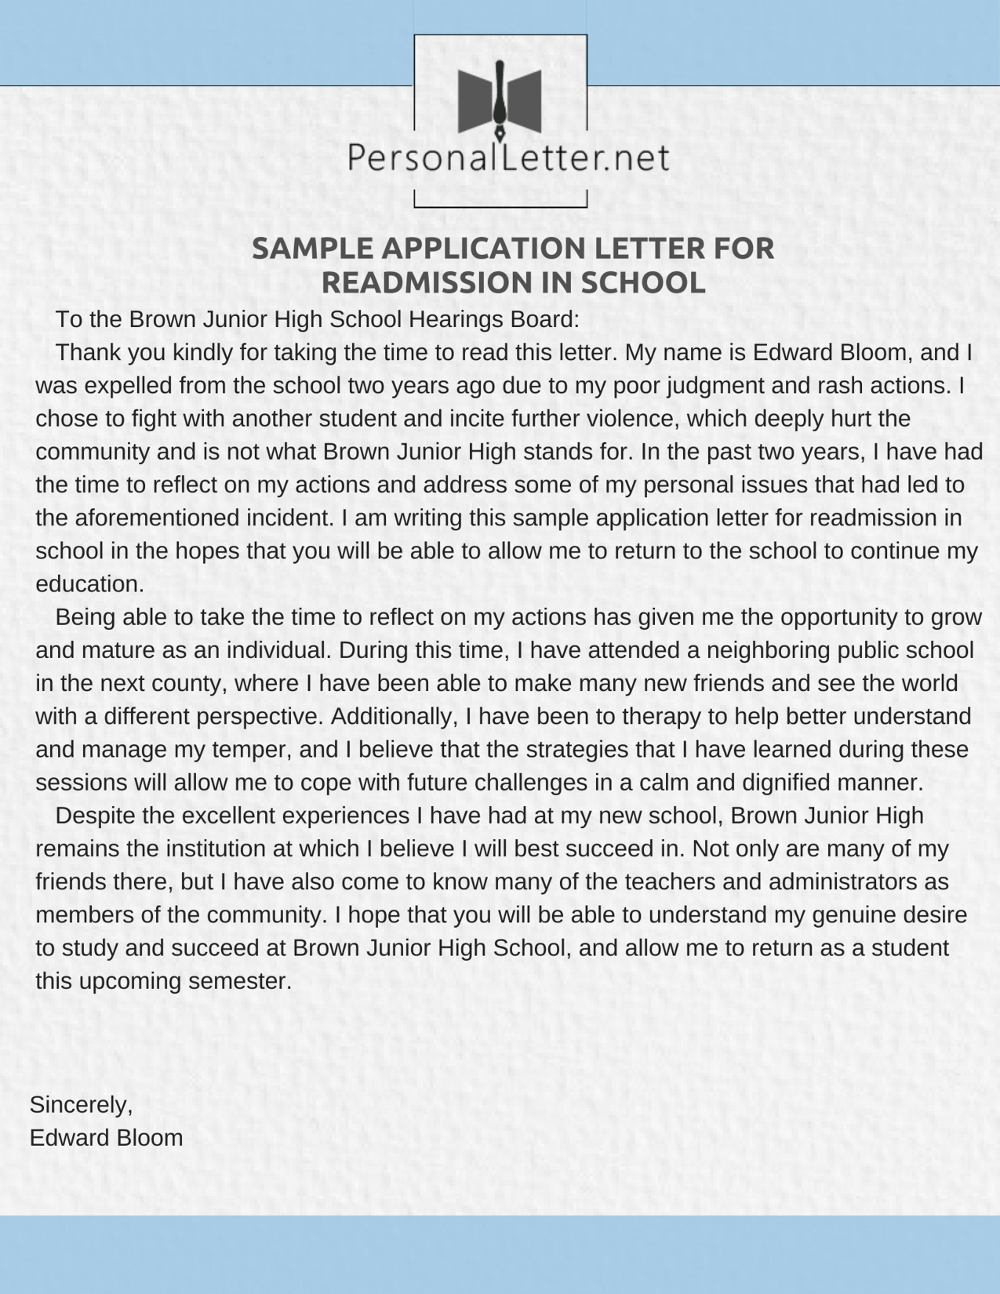 Application Letter For Readmission In School Expert Help